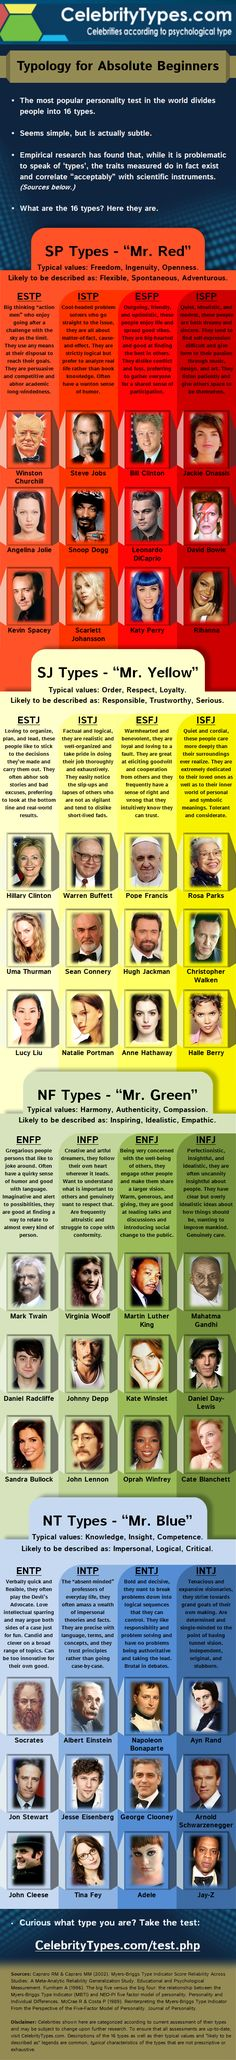 Celebrity Types Typology for Absolute Beginners infographic.